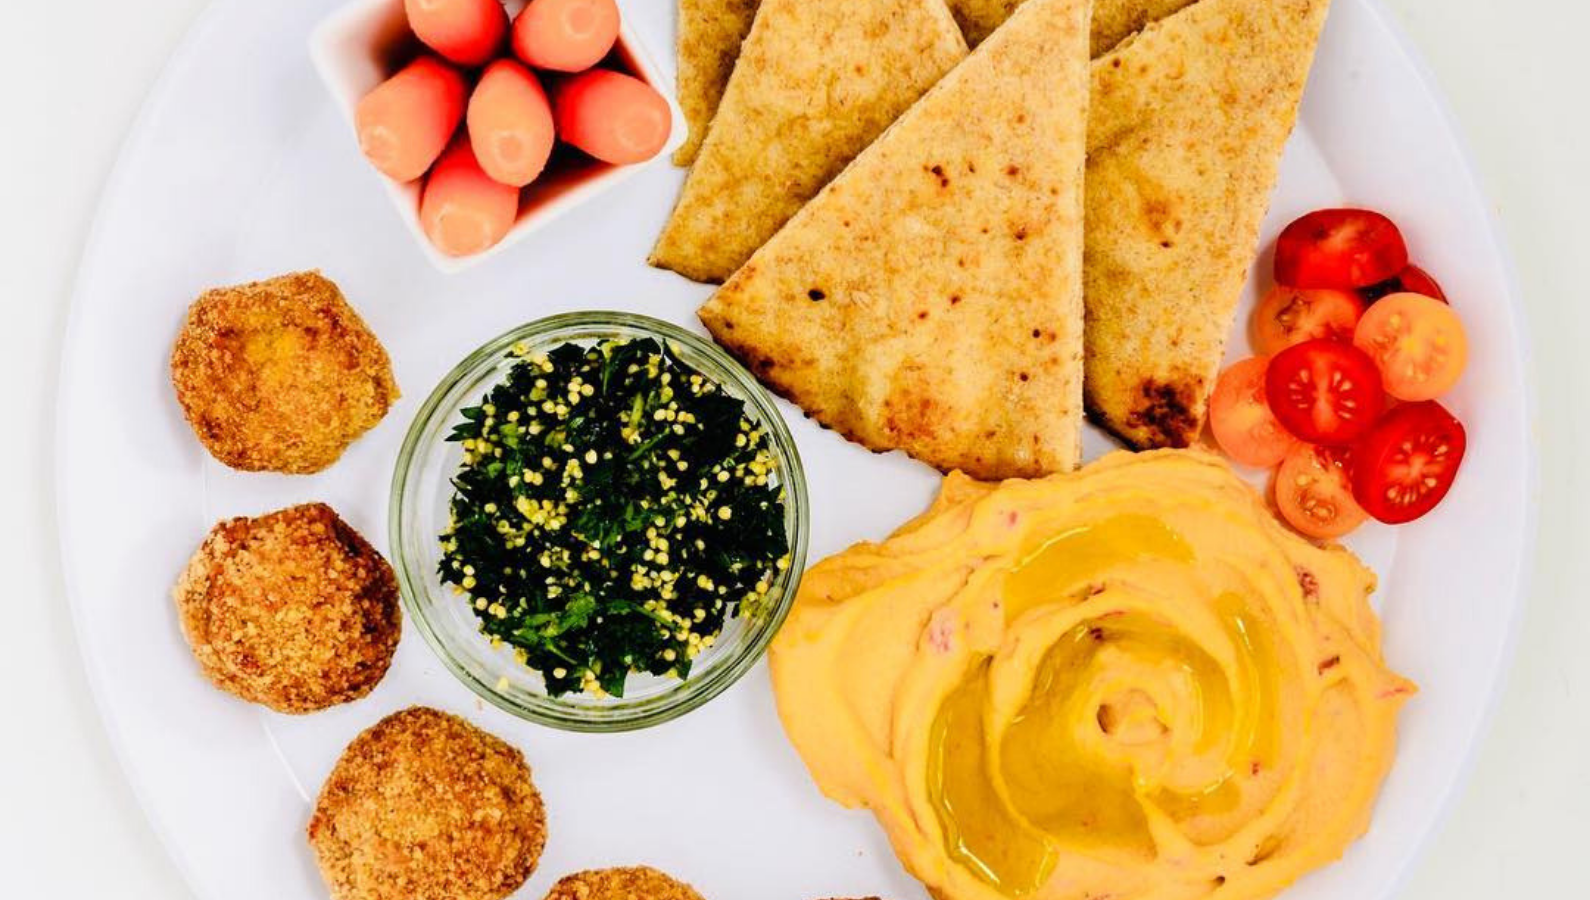 Make a simple Mediterranean plate with hummus and Wundernuggets